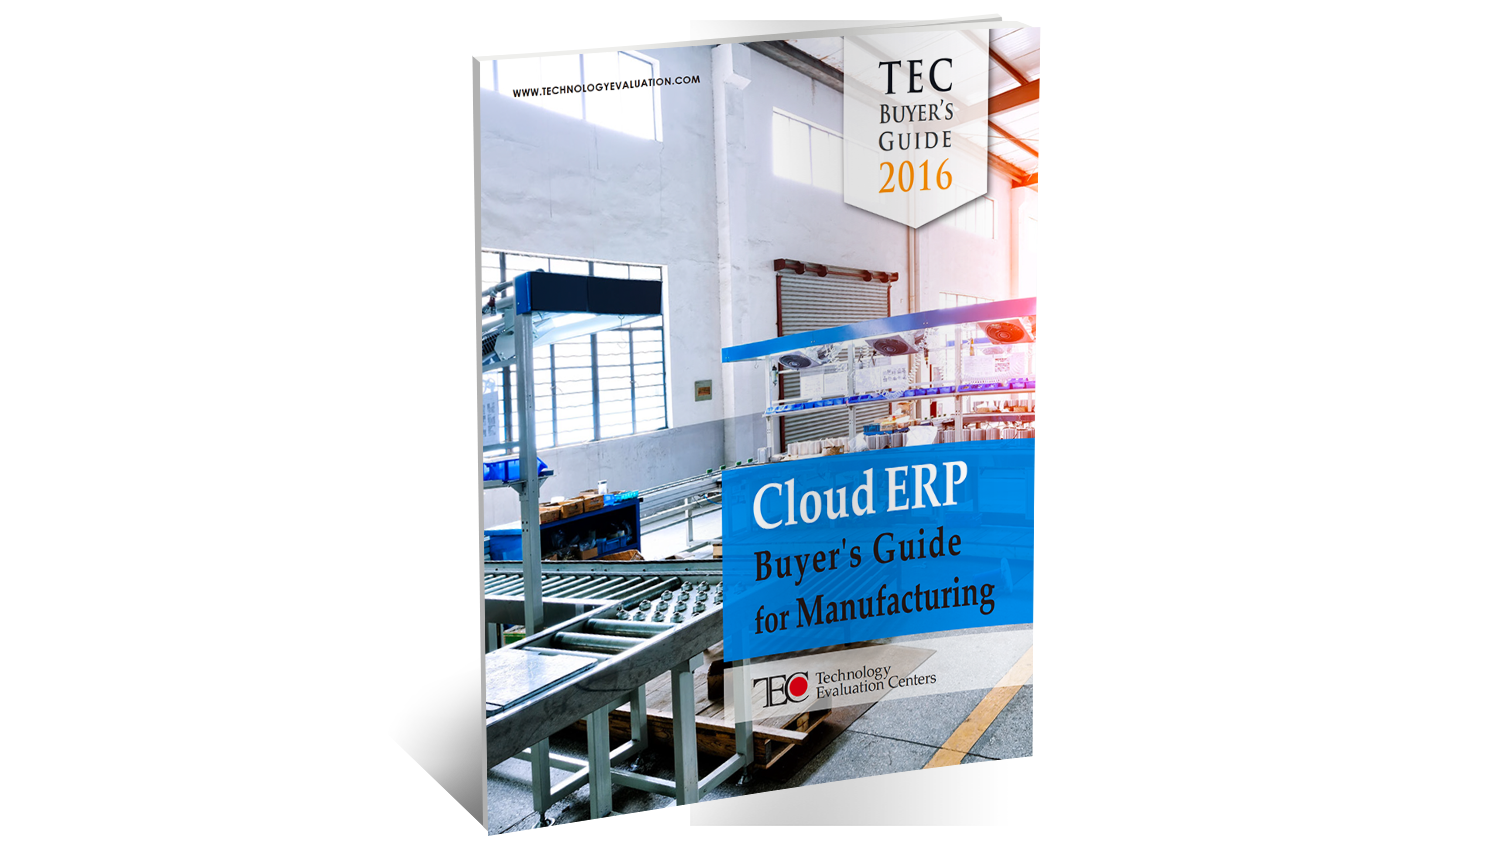 2016 TEC Cloud ERP for Manufacturing Guide